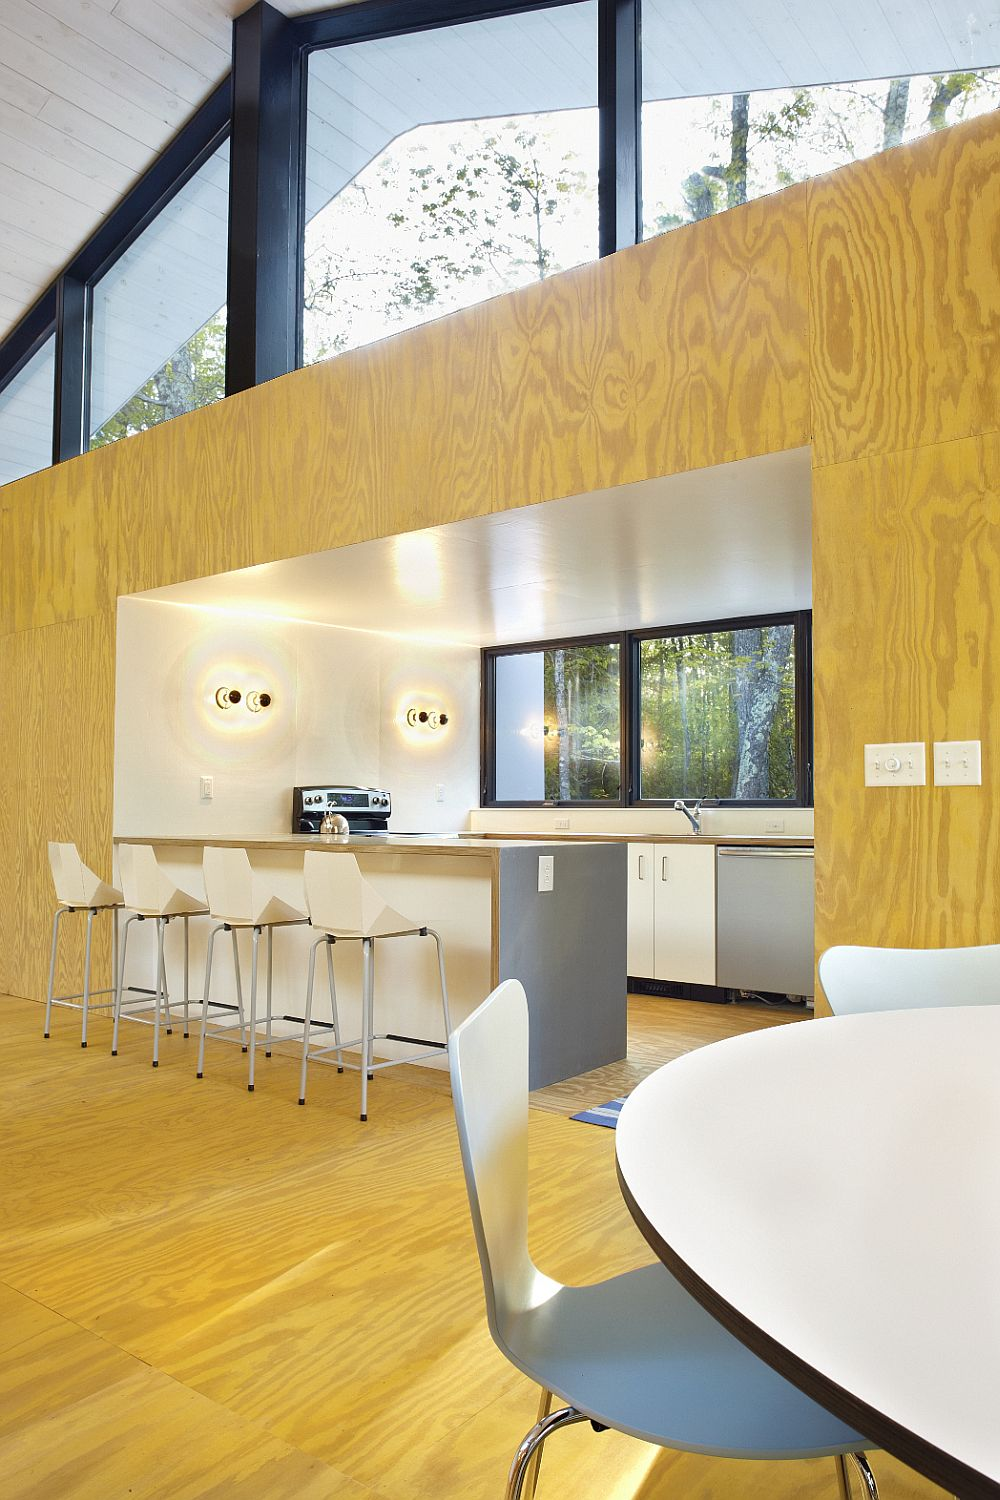 Kitchen acts as a room within a room thanks to its unique design